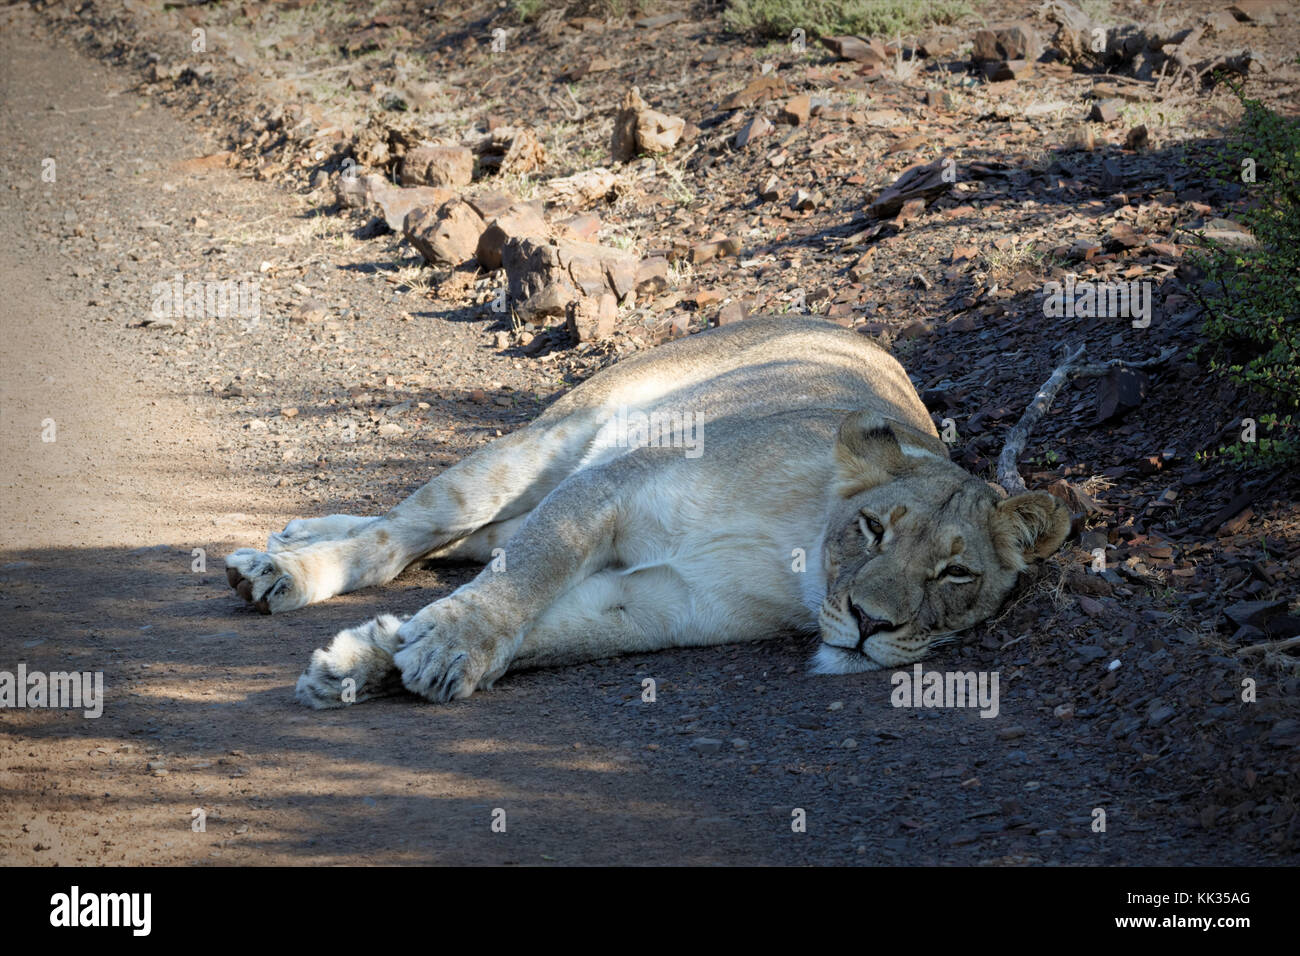 Tired lion in the Kruger National Park, South Africa Stock Photo